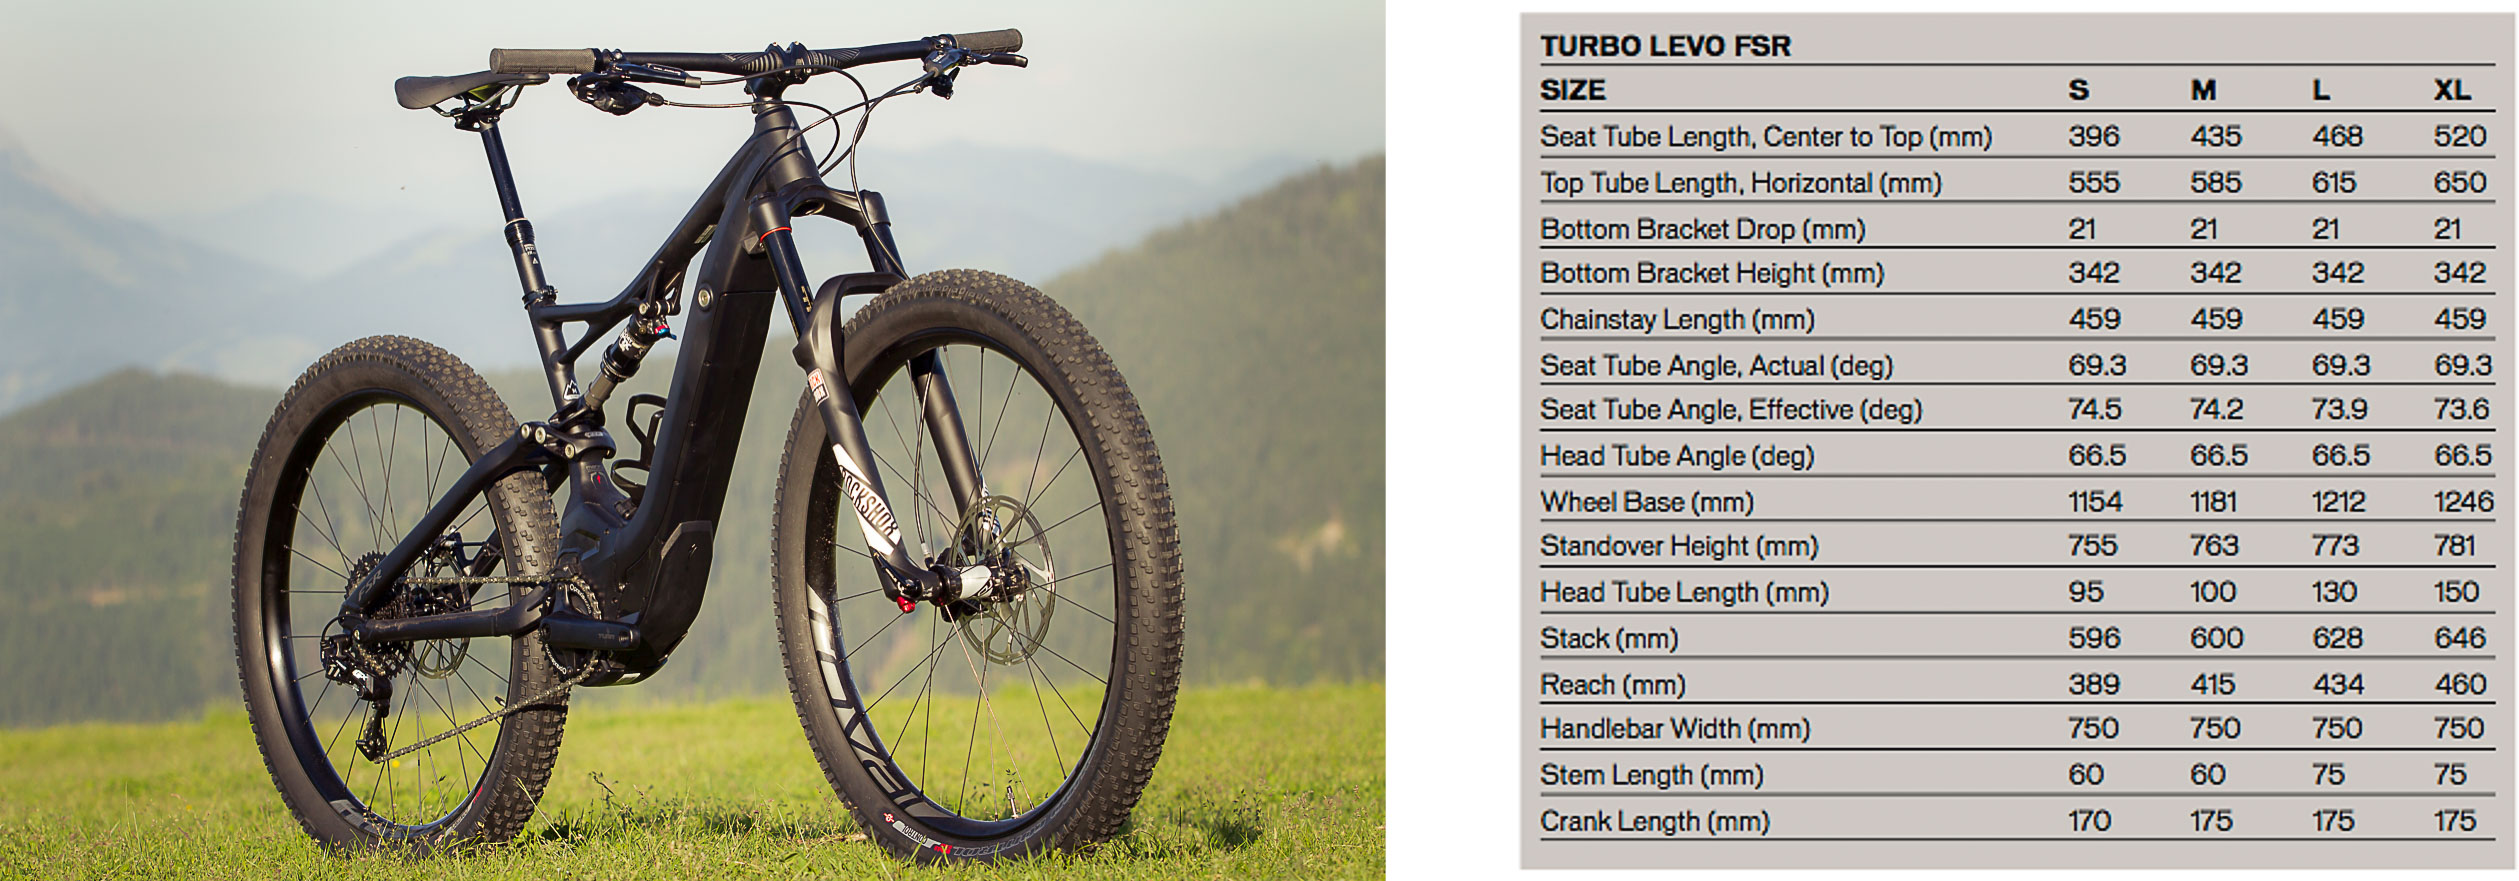 4-Specialized_Turbo_Levo_FSR